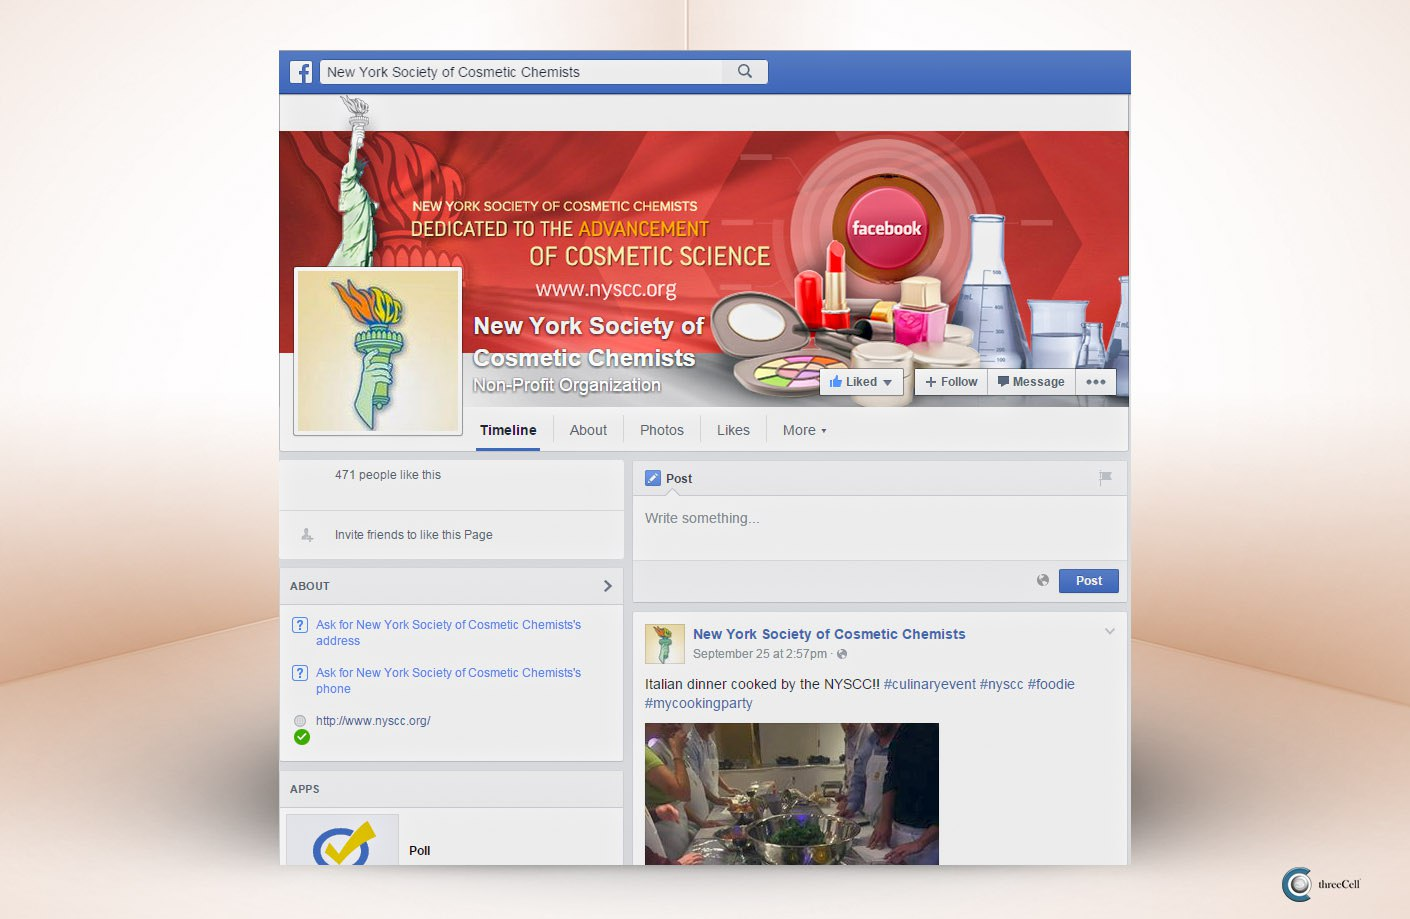 New York Society of Cosmetic Chemists - Facebook Social Media Design